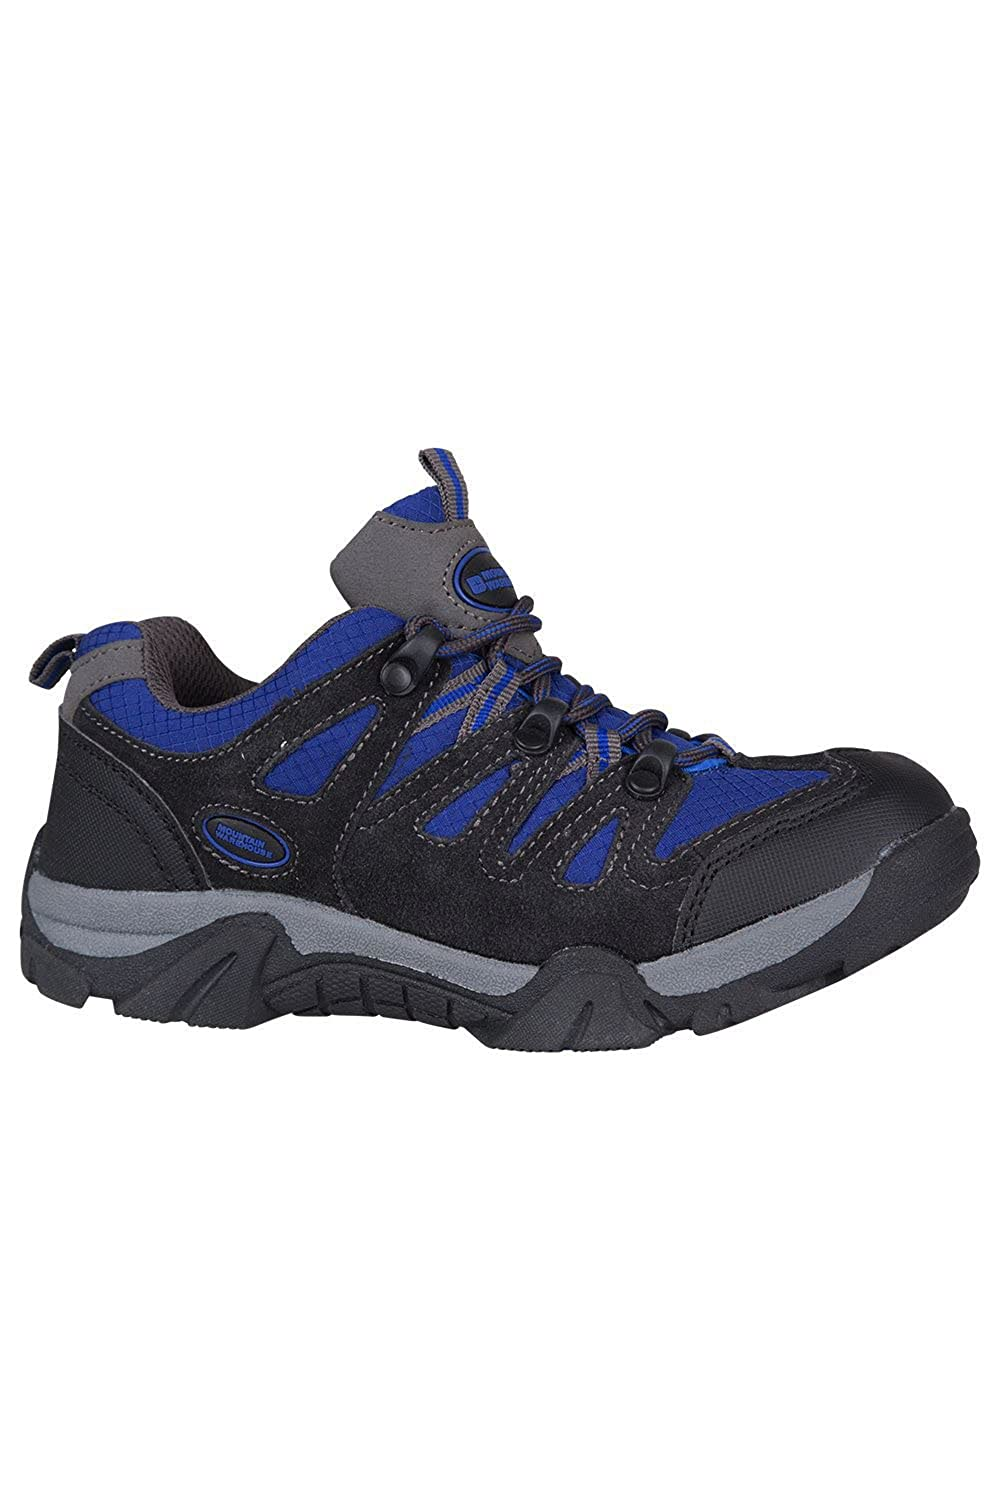 Hiking Shoes Mountain Warehouse Cannonball Kids Walking Shoes